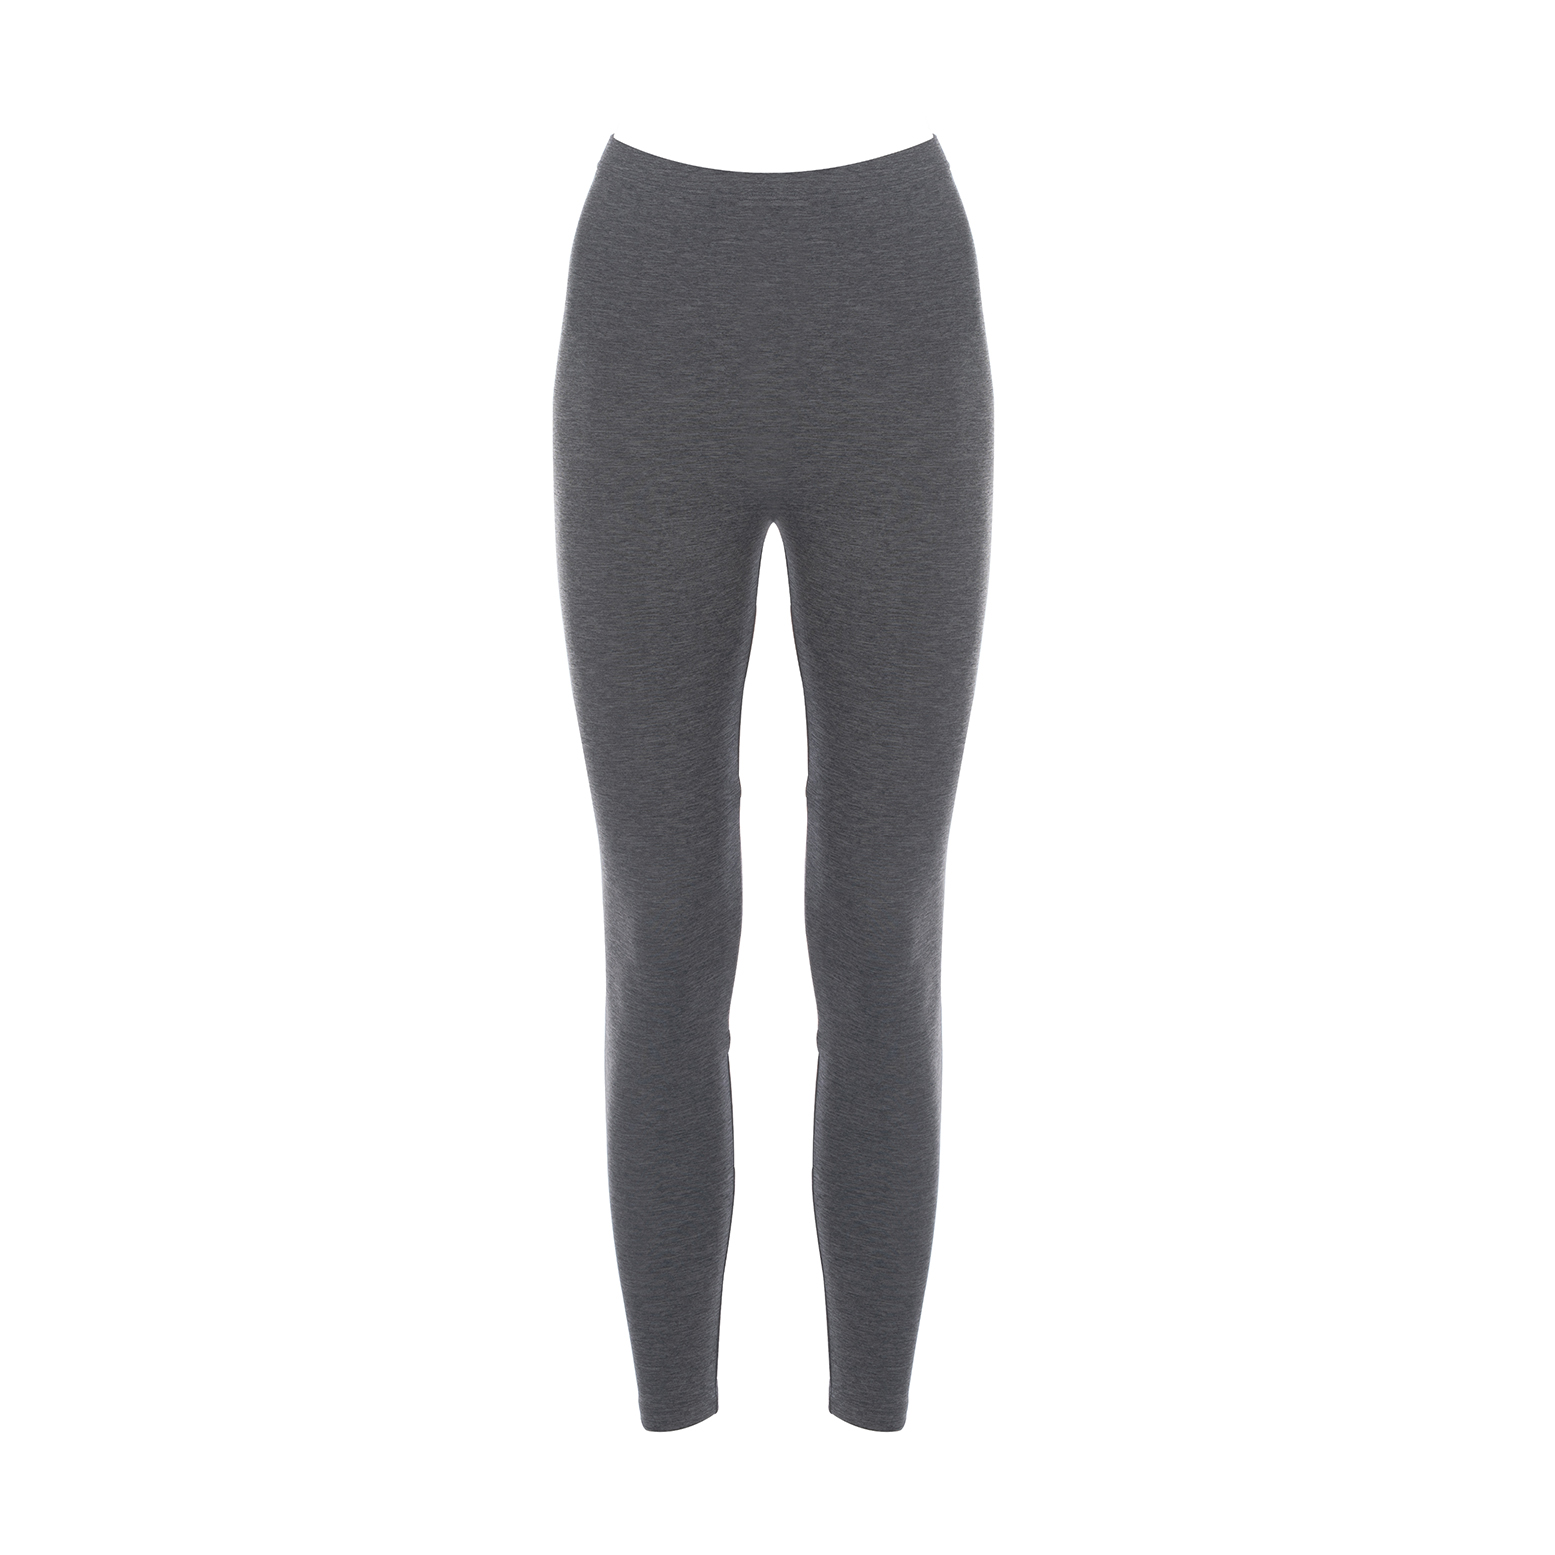 Linda Raff Collection -Leggings Reformer Grey Mèlange